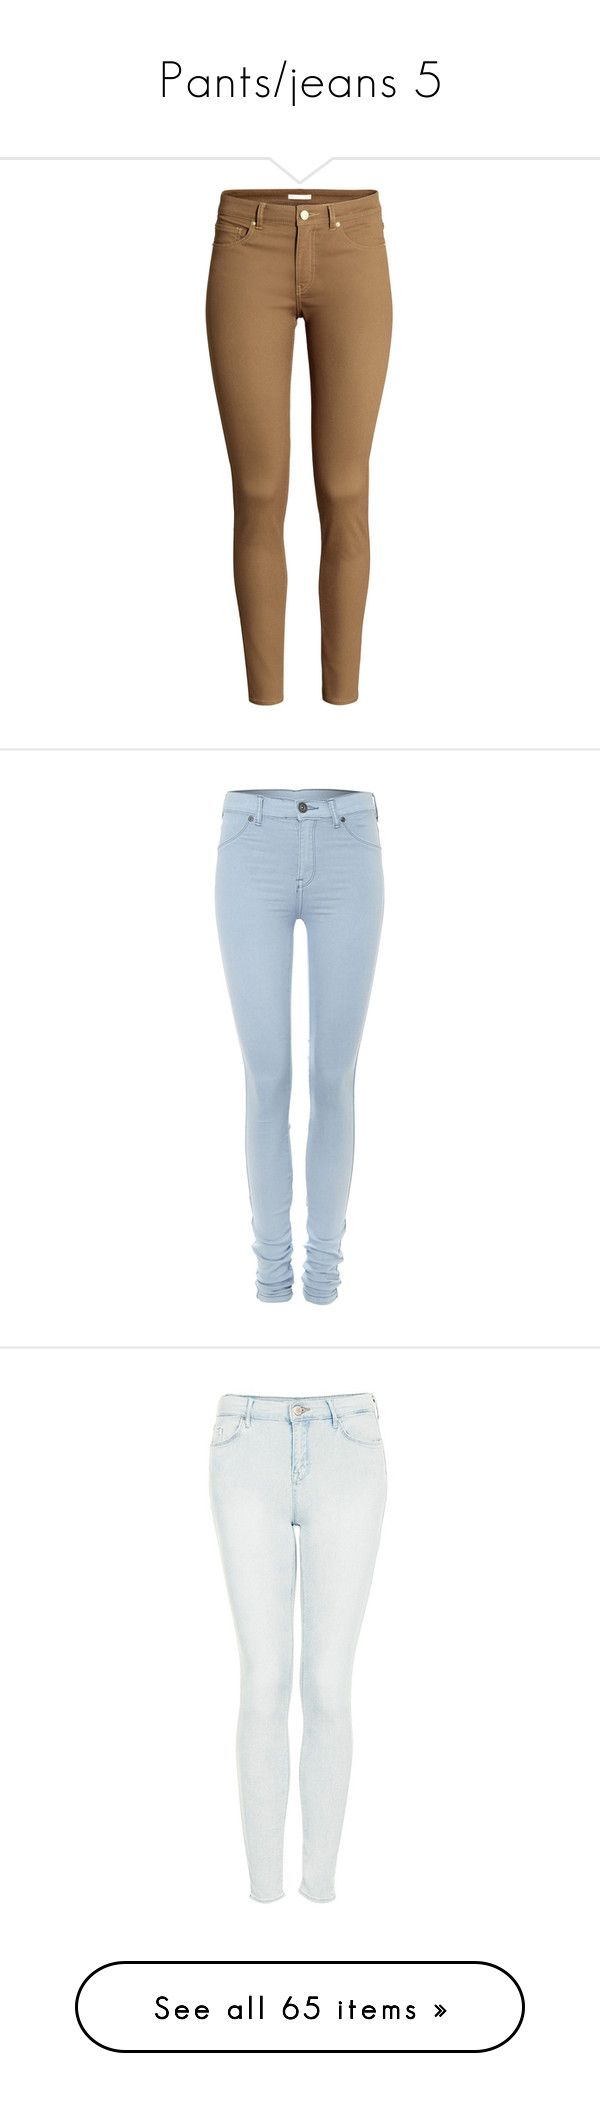 """""""Pants/jeans 5"""" by musicmelody1 on Polyvore featuring pants, jeans, bottoms, trousers, pantalon, dark beige, h&m trousers, 5 pocket pants, brown trousers and brown pants"""